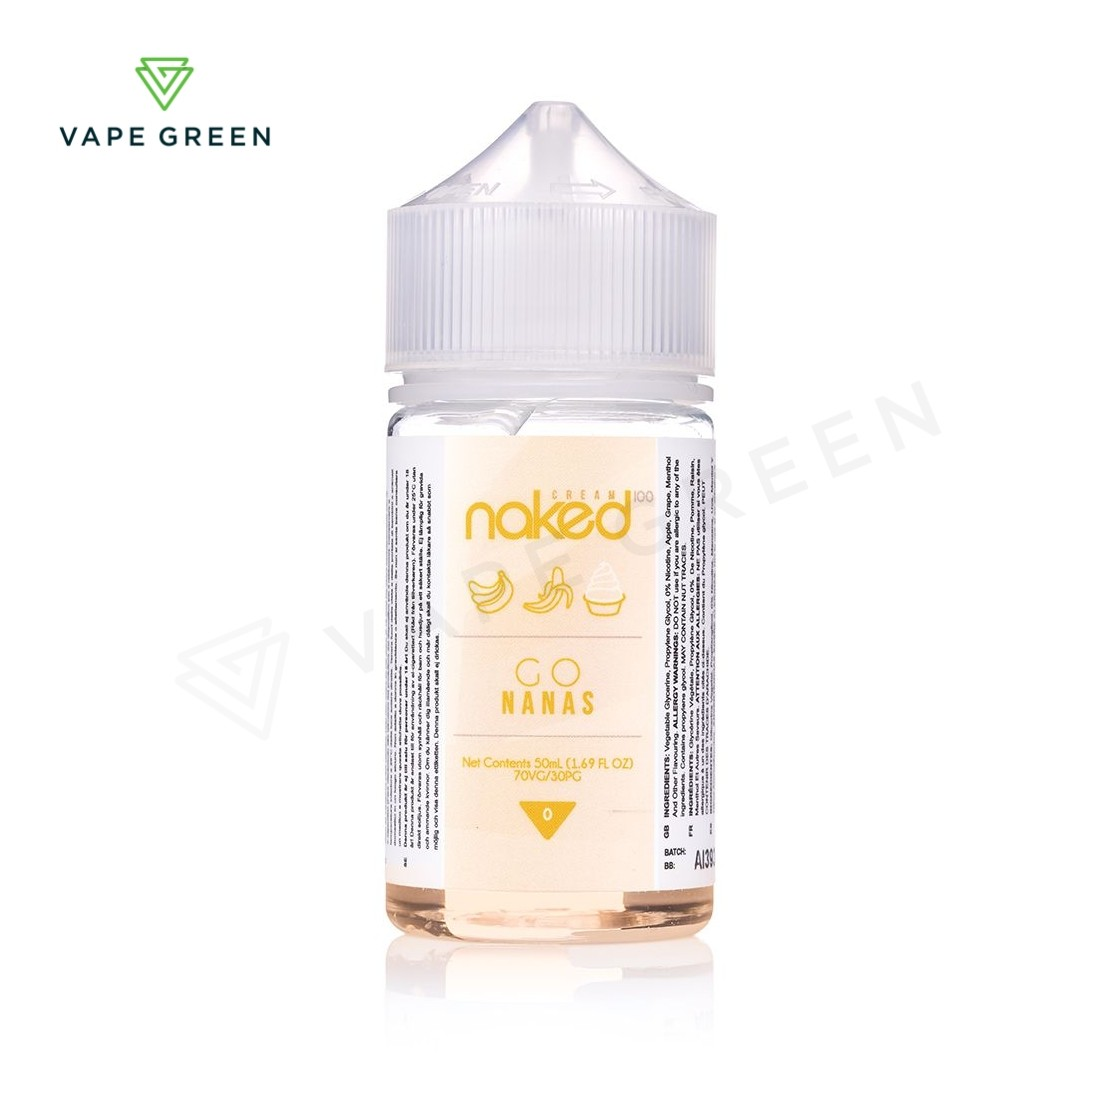 Go Nanas E-liquid by Naked 100 - 50ml